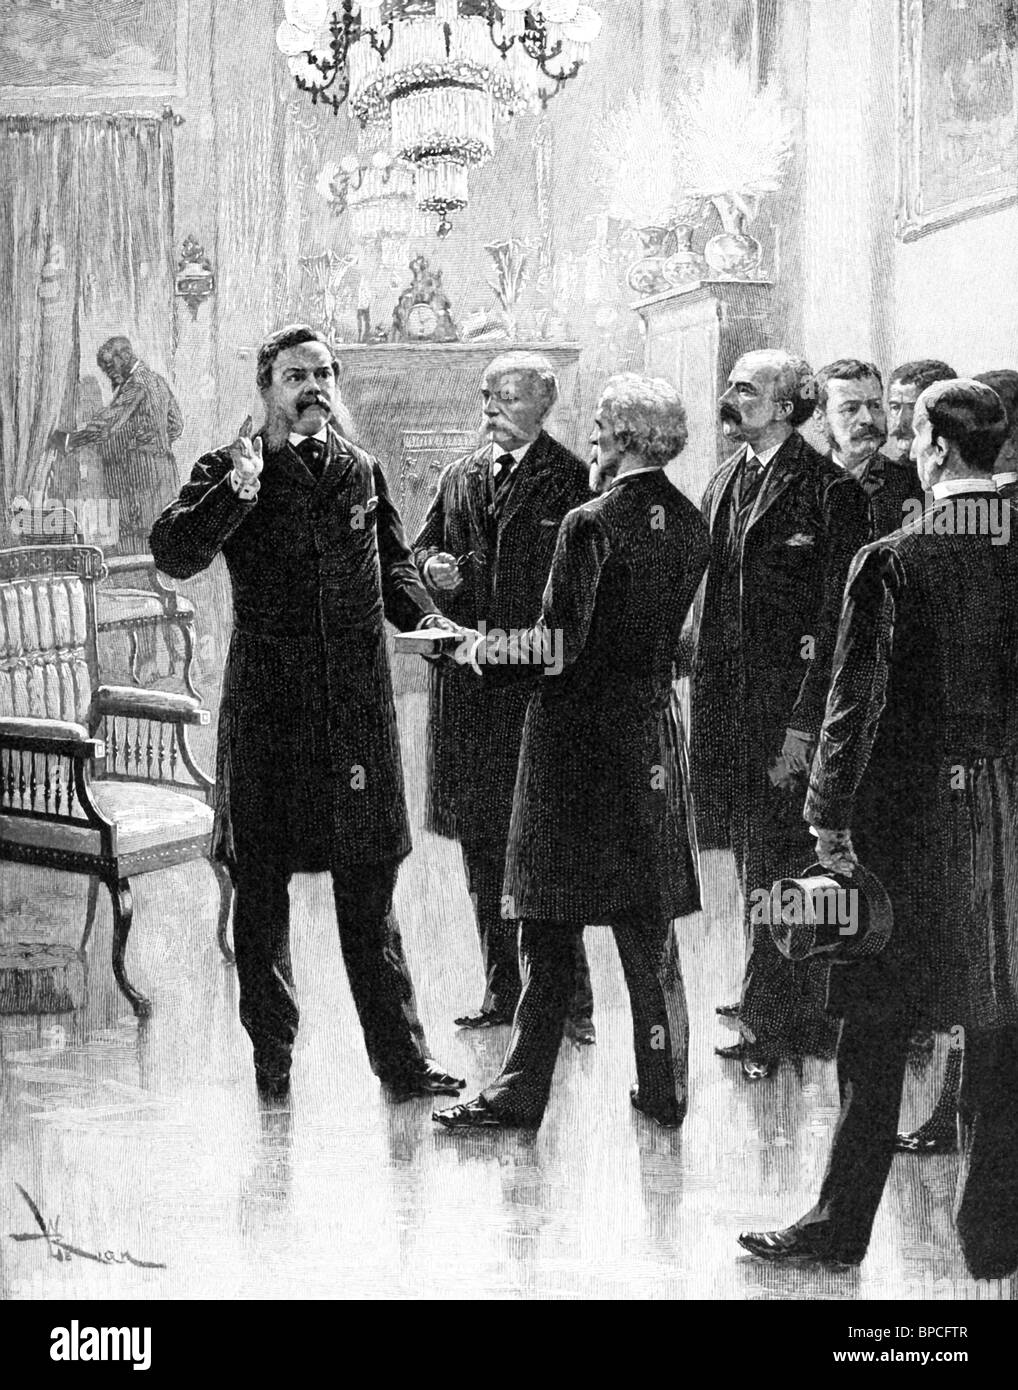 Chester Alan Arthur, elected the 21st President of the United States, succeeded to the president after Garfield's - Stock Image